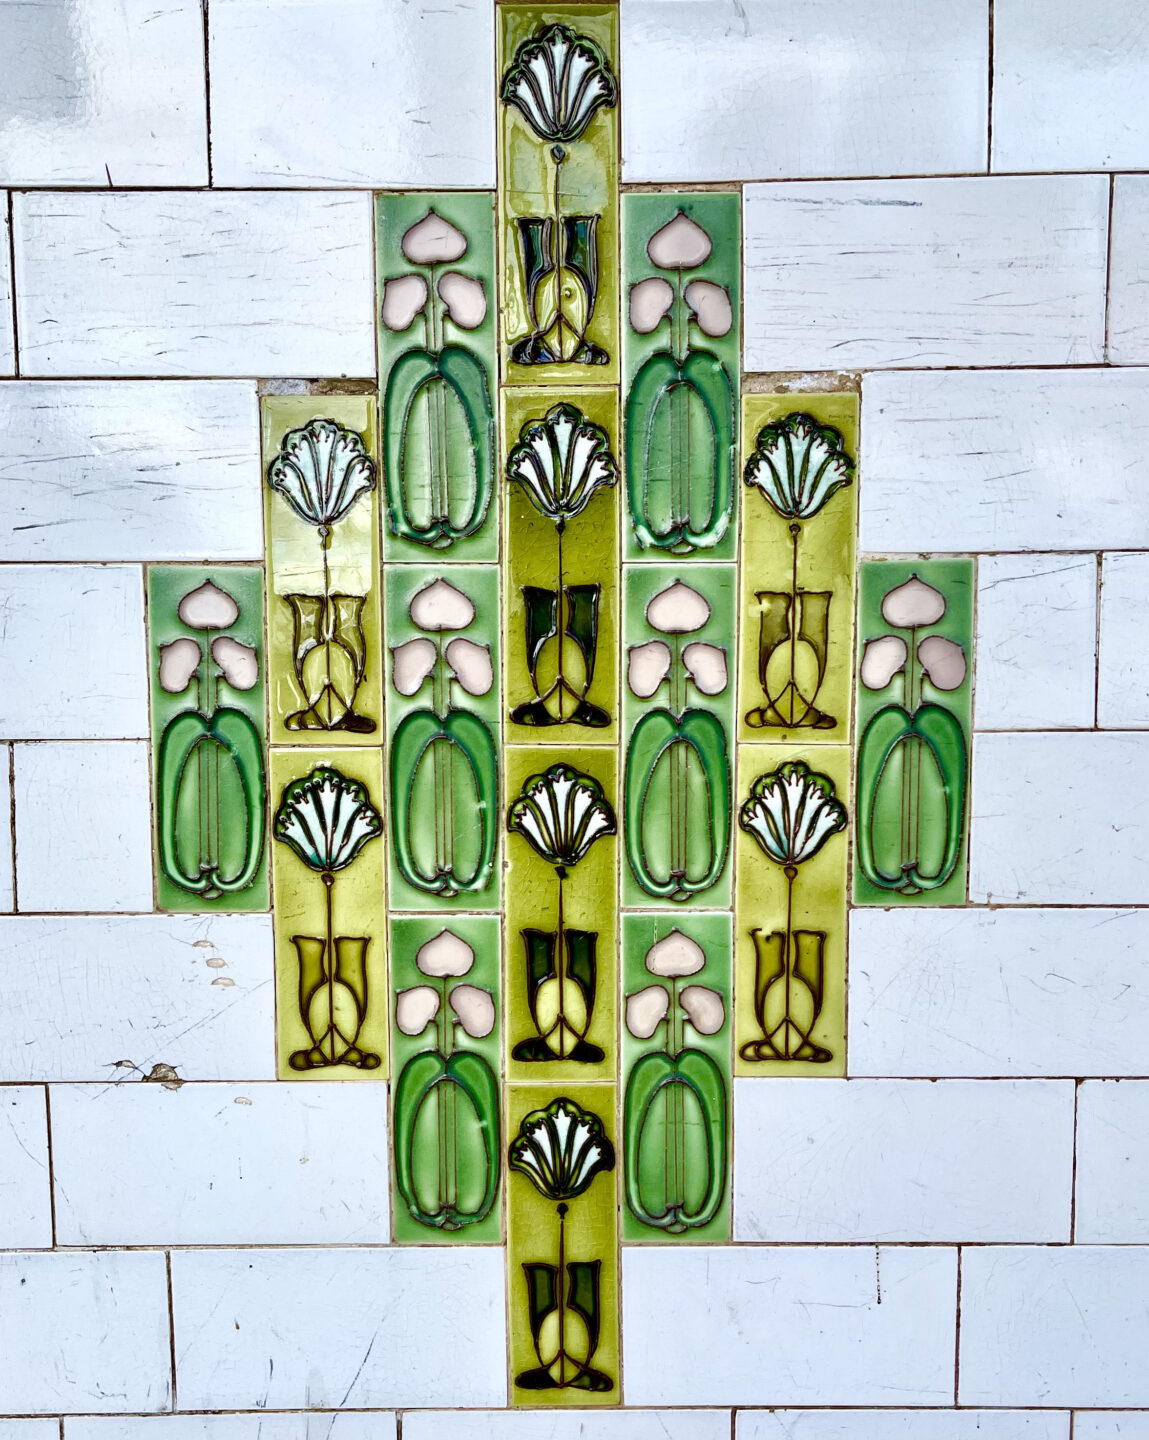 A close up of colourful wall tiles in apple green and lime green.